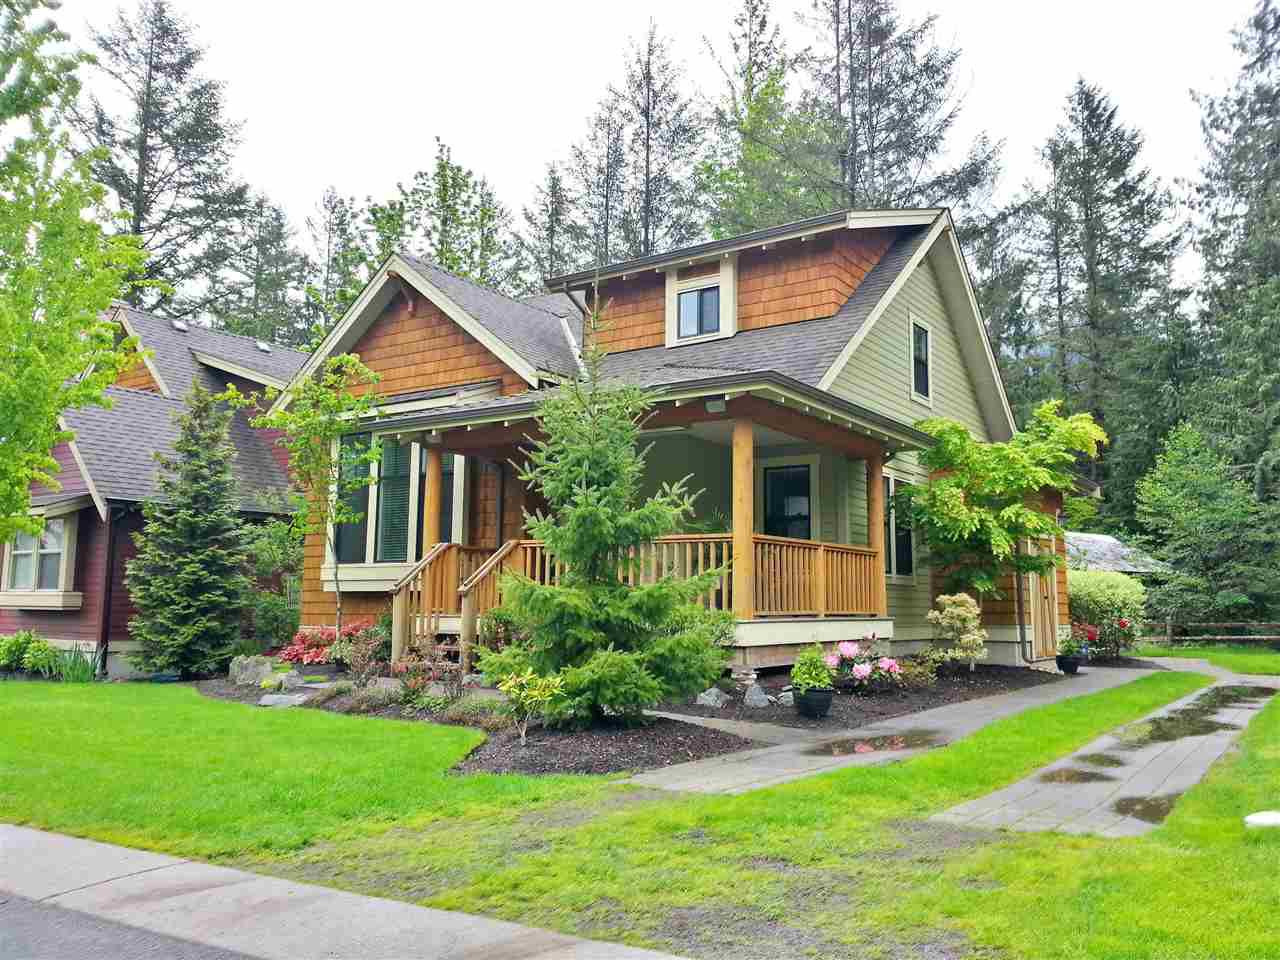 """Main Photo: 1854 MOSSY GREEN Way: Lindell Beach House for sale in """"THE COTTAGES AT CULTUS LAKE"""" (Cultus Lake)  : MLS®# R2167523"""